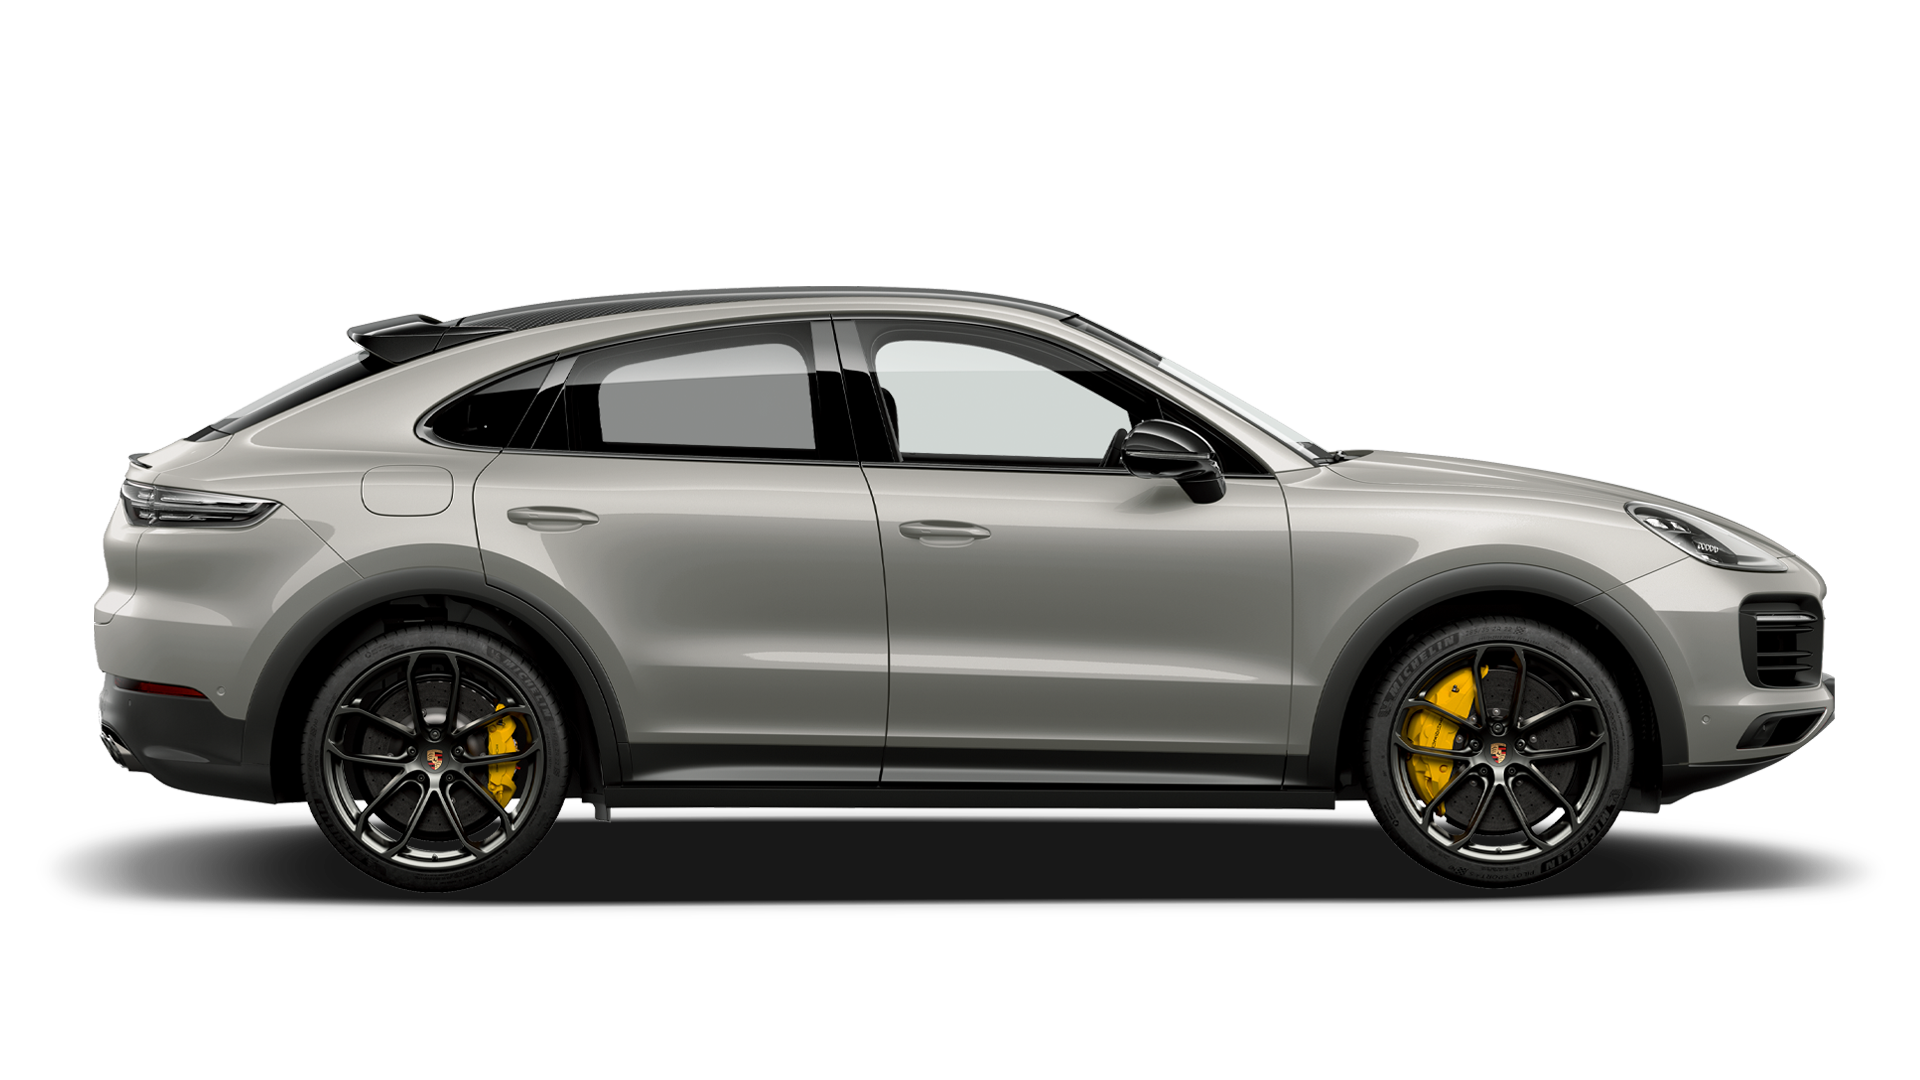 Image result for Porsche Cayenne Turbo  hd photos